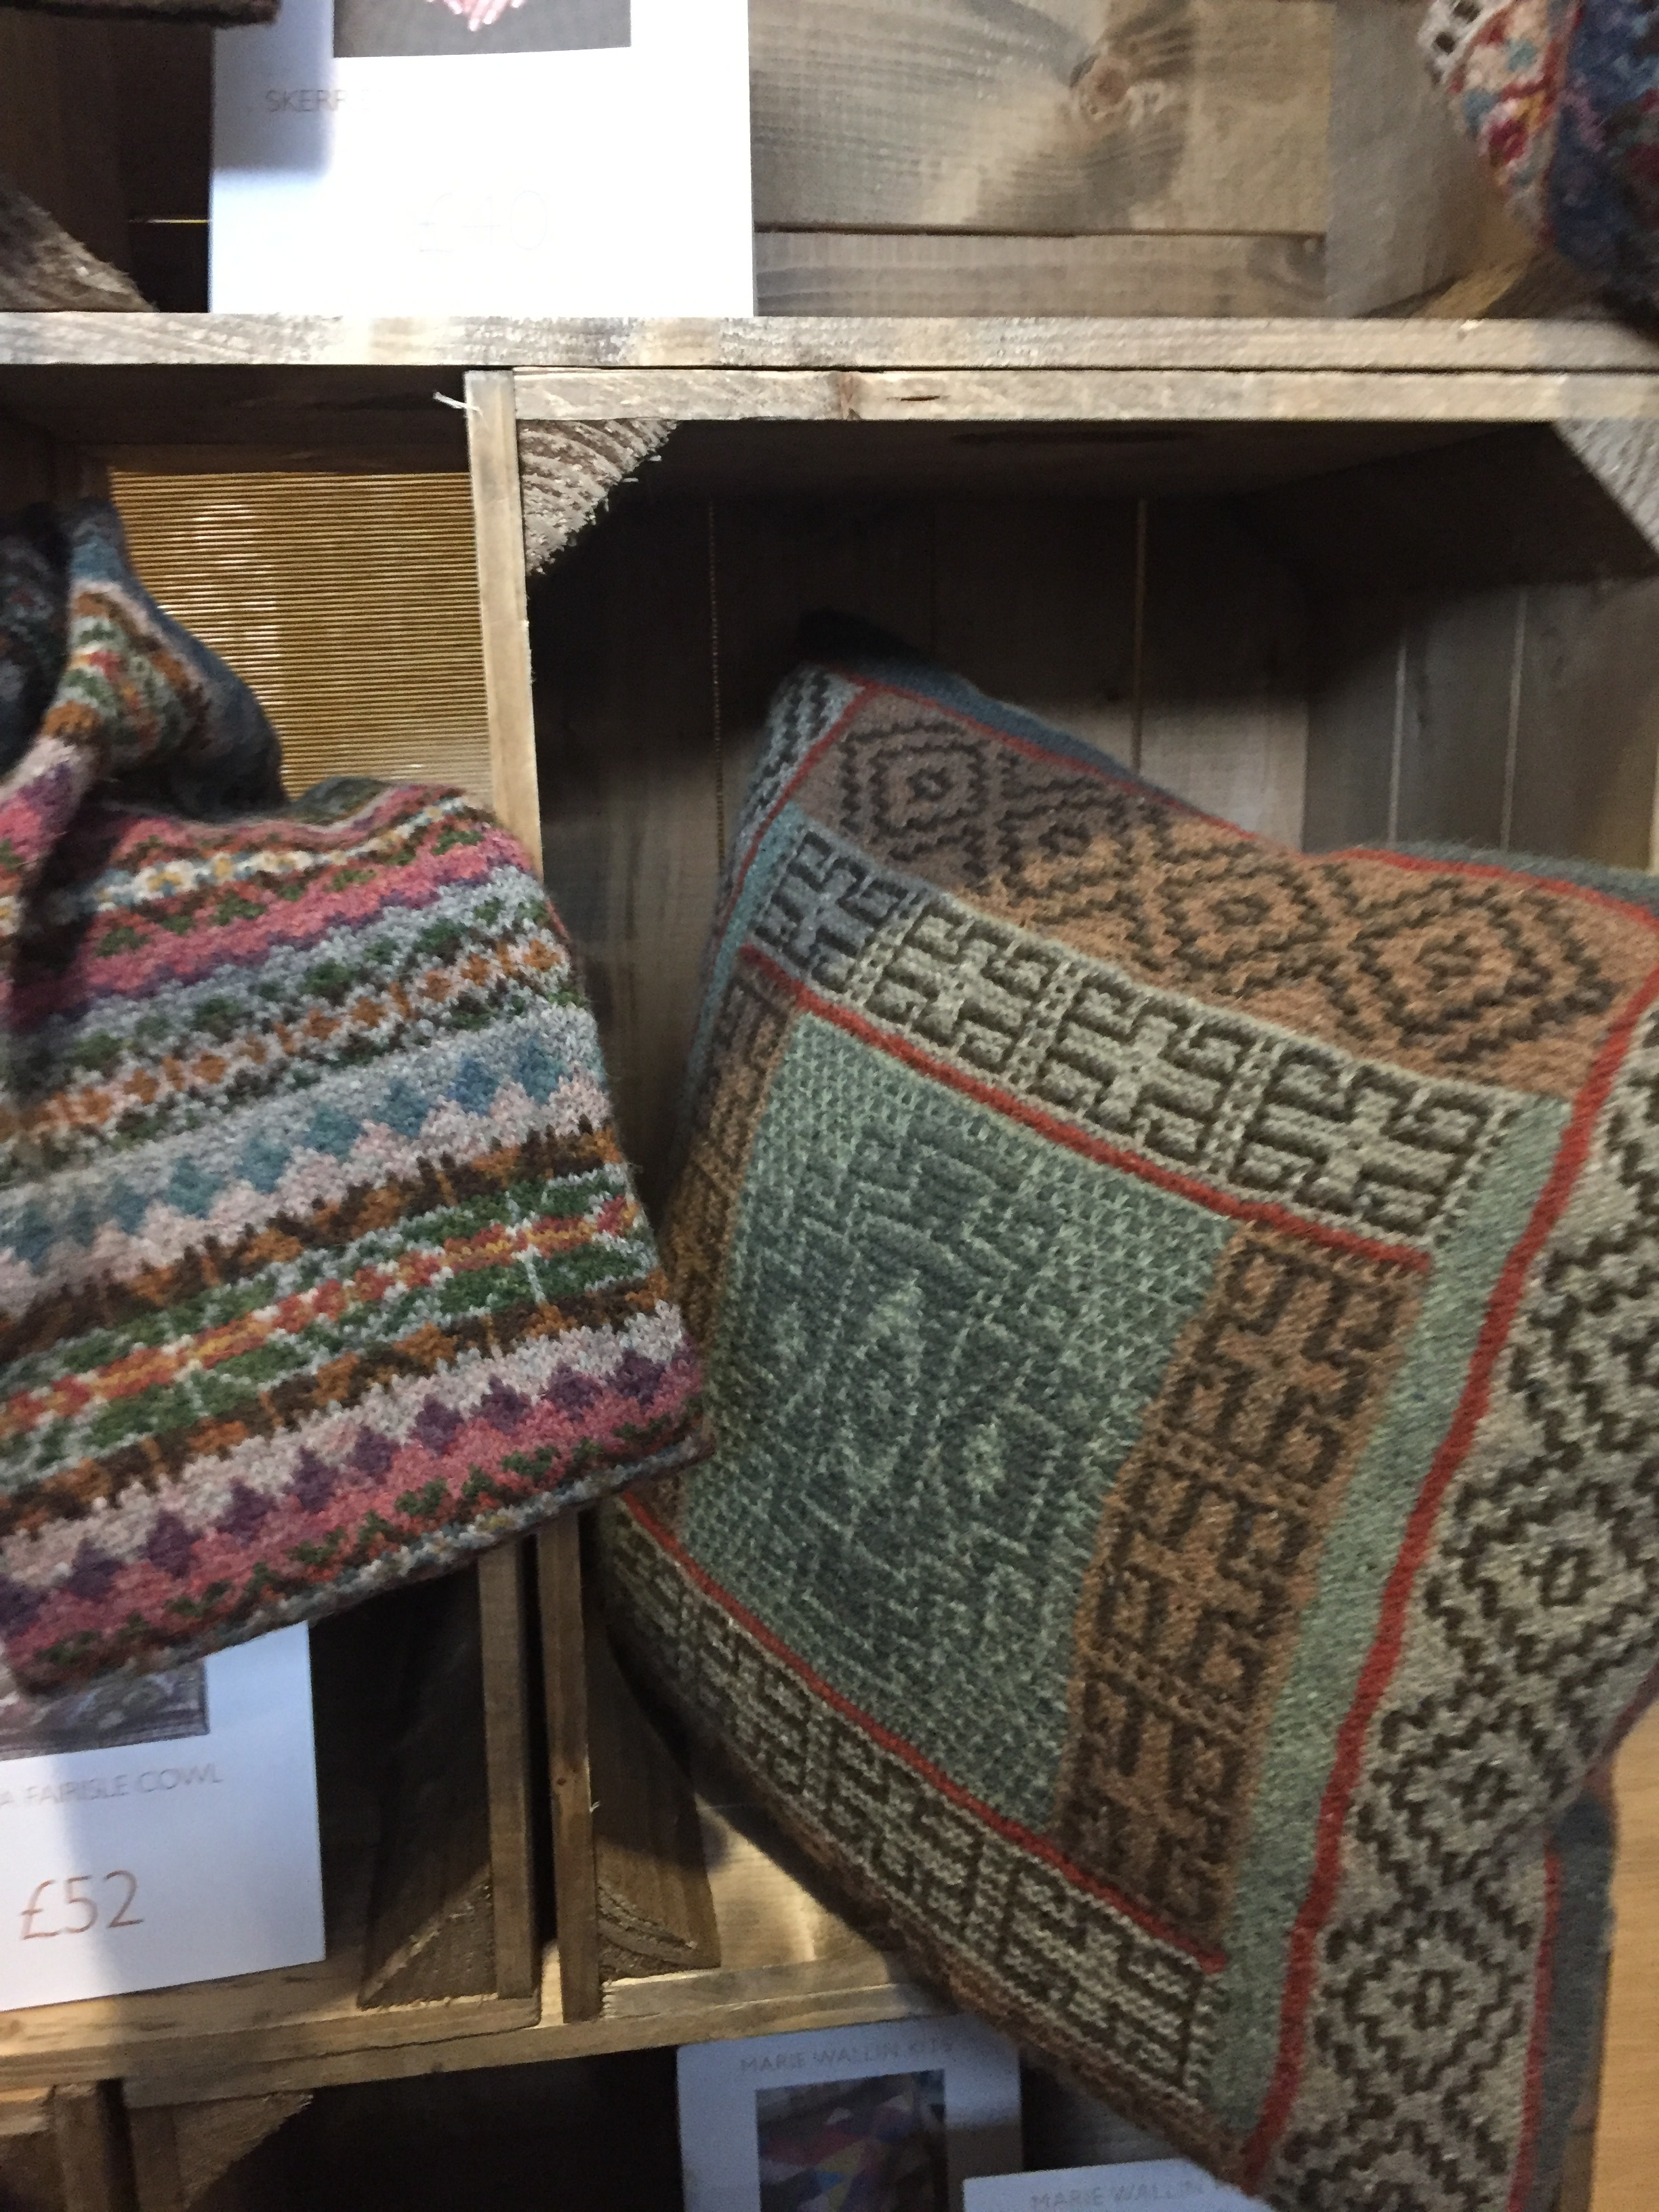 Photo taken by Aleks Byrd of samples from Marie Wallin Designs' booth at Nottingham Yarn Expo showcasing home goods (pillows) and accessories (cowl) 2017.